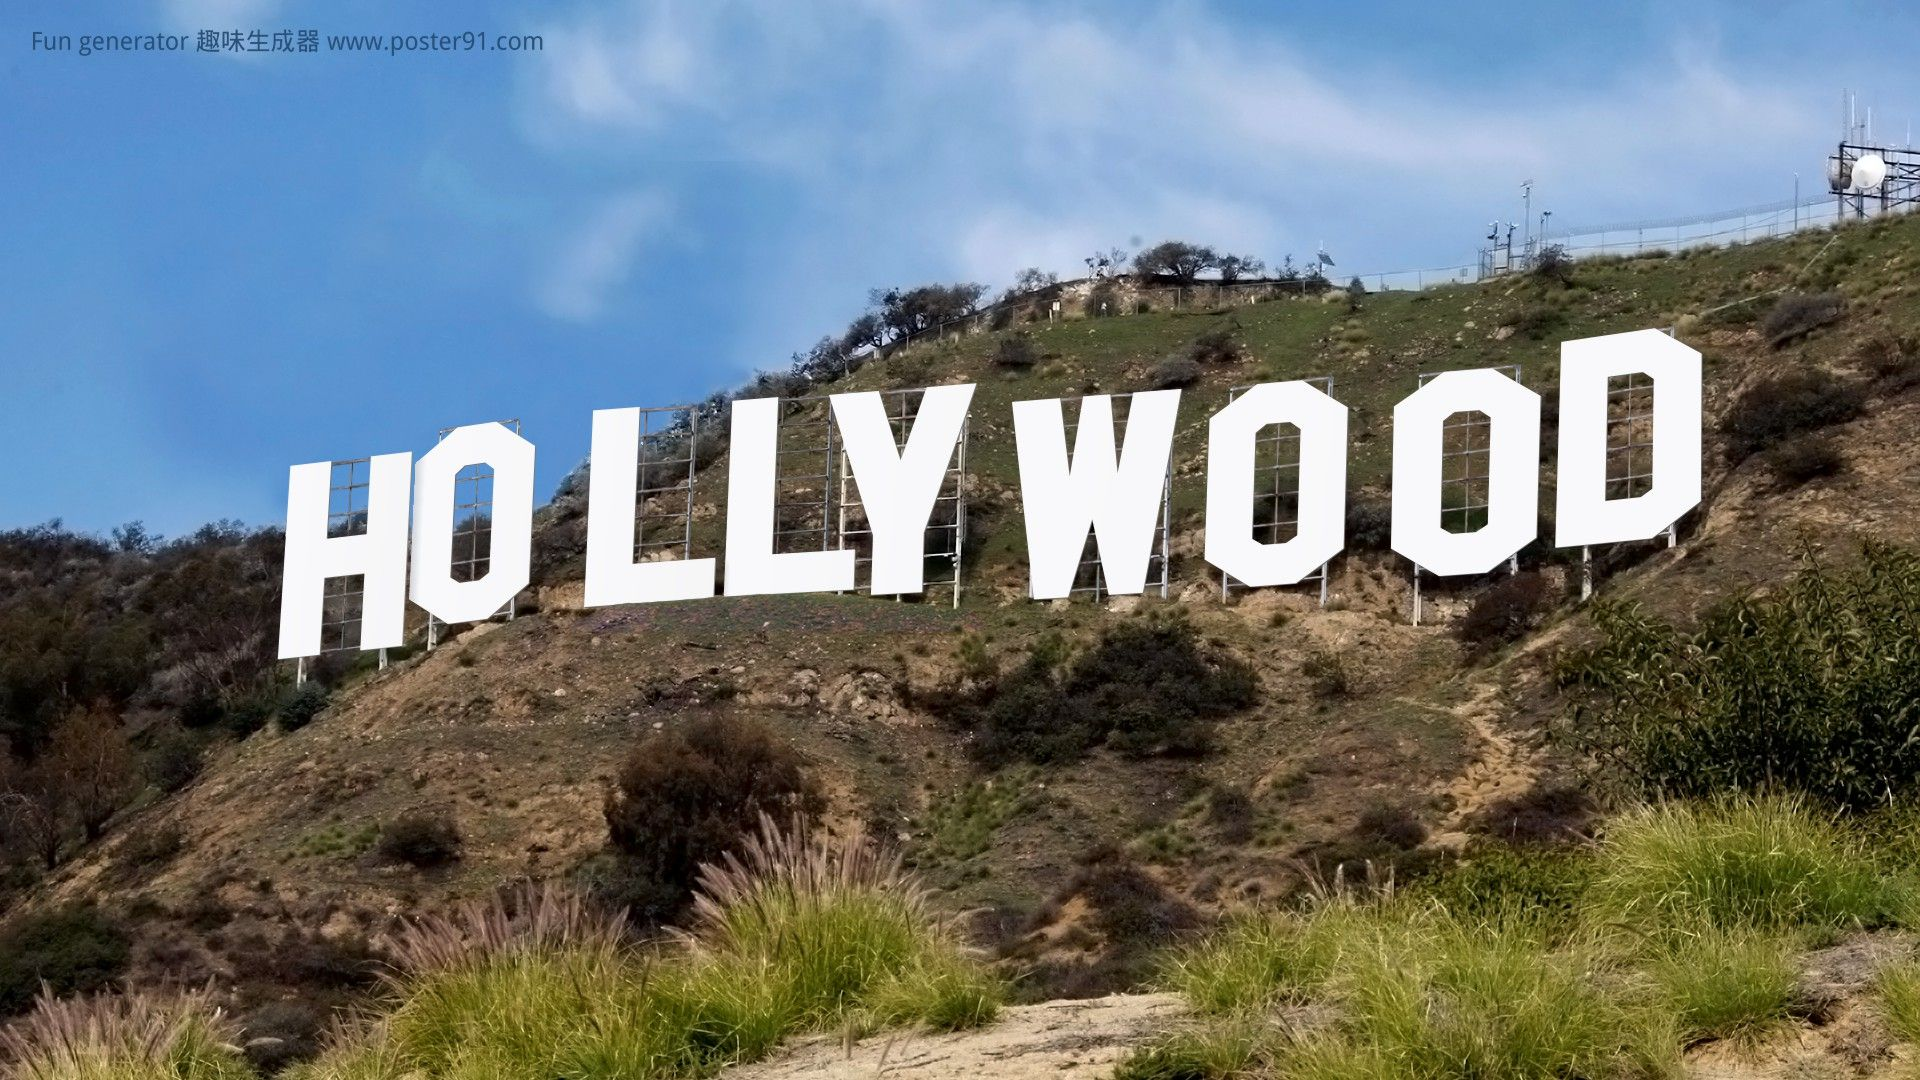 Notwithstanding Hollywood Still The Epicenter Of Cultural Inequality Accord